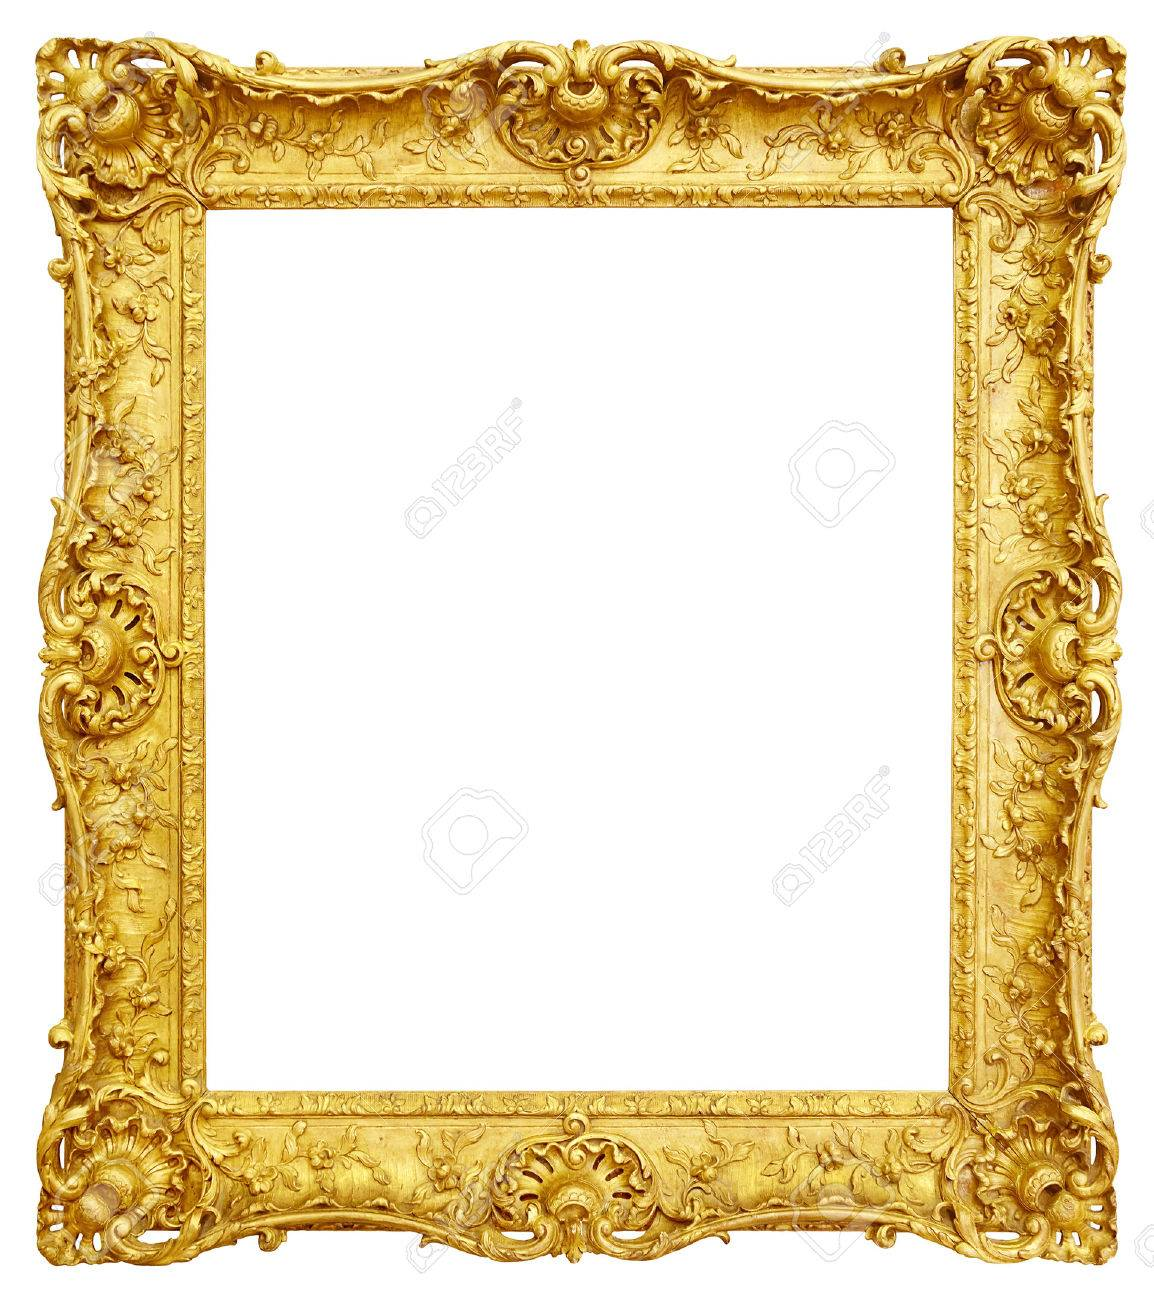 Gold Rahmen Gold Vintage Frame Isolated On White Background Stock Photo, Picture And Royalty Free Image. Image 48507073.